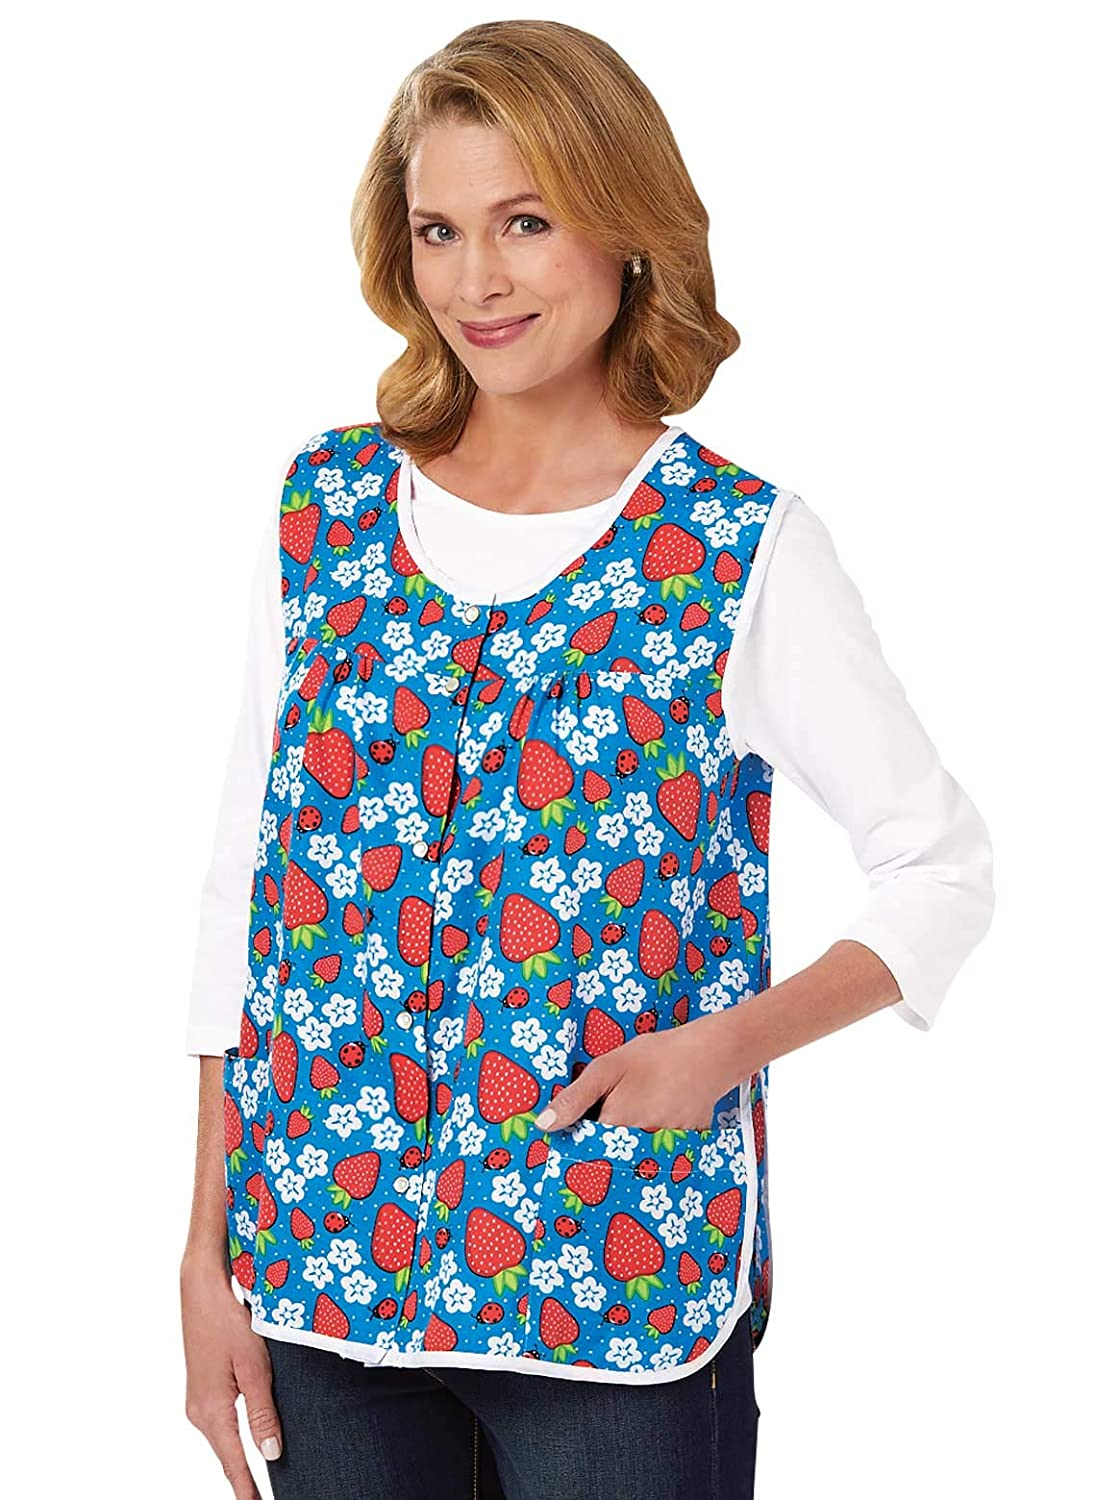 Kitchen Dining 1x Carol Wright Gifts Cobbler Apron Color Daisy 1x Daisy Size Extra Large Size Extra Large Kitchen Table Linens